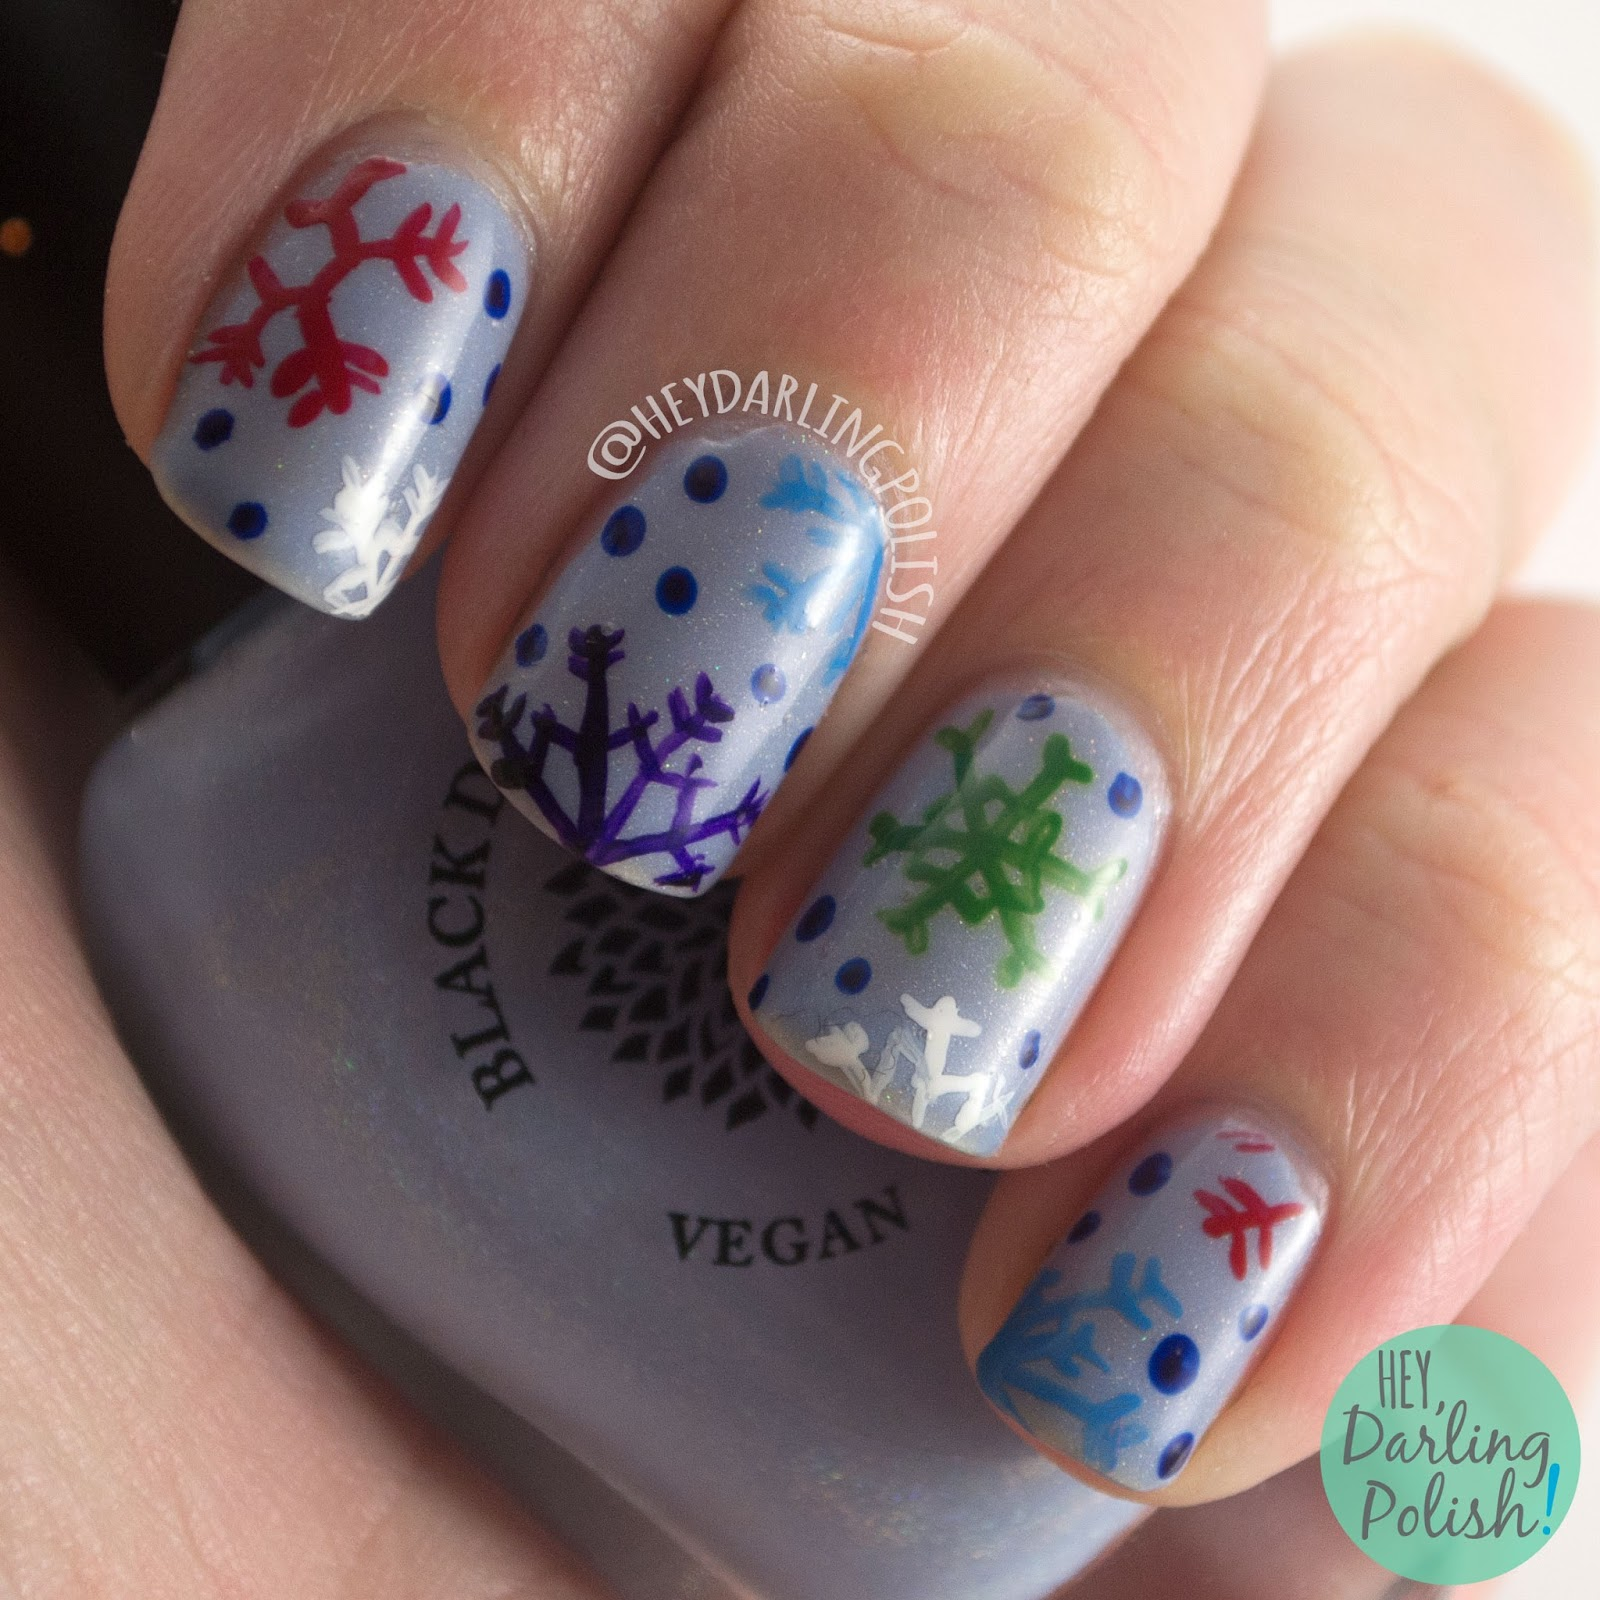 nails, nail art, nail polish, snowflakes, colorful, pattern, winter, hey darling polish, nail linkup